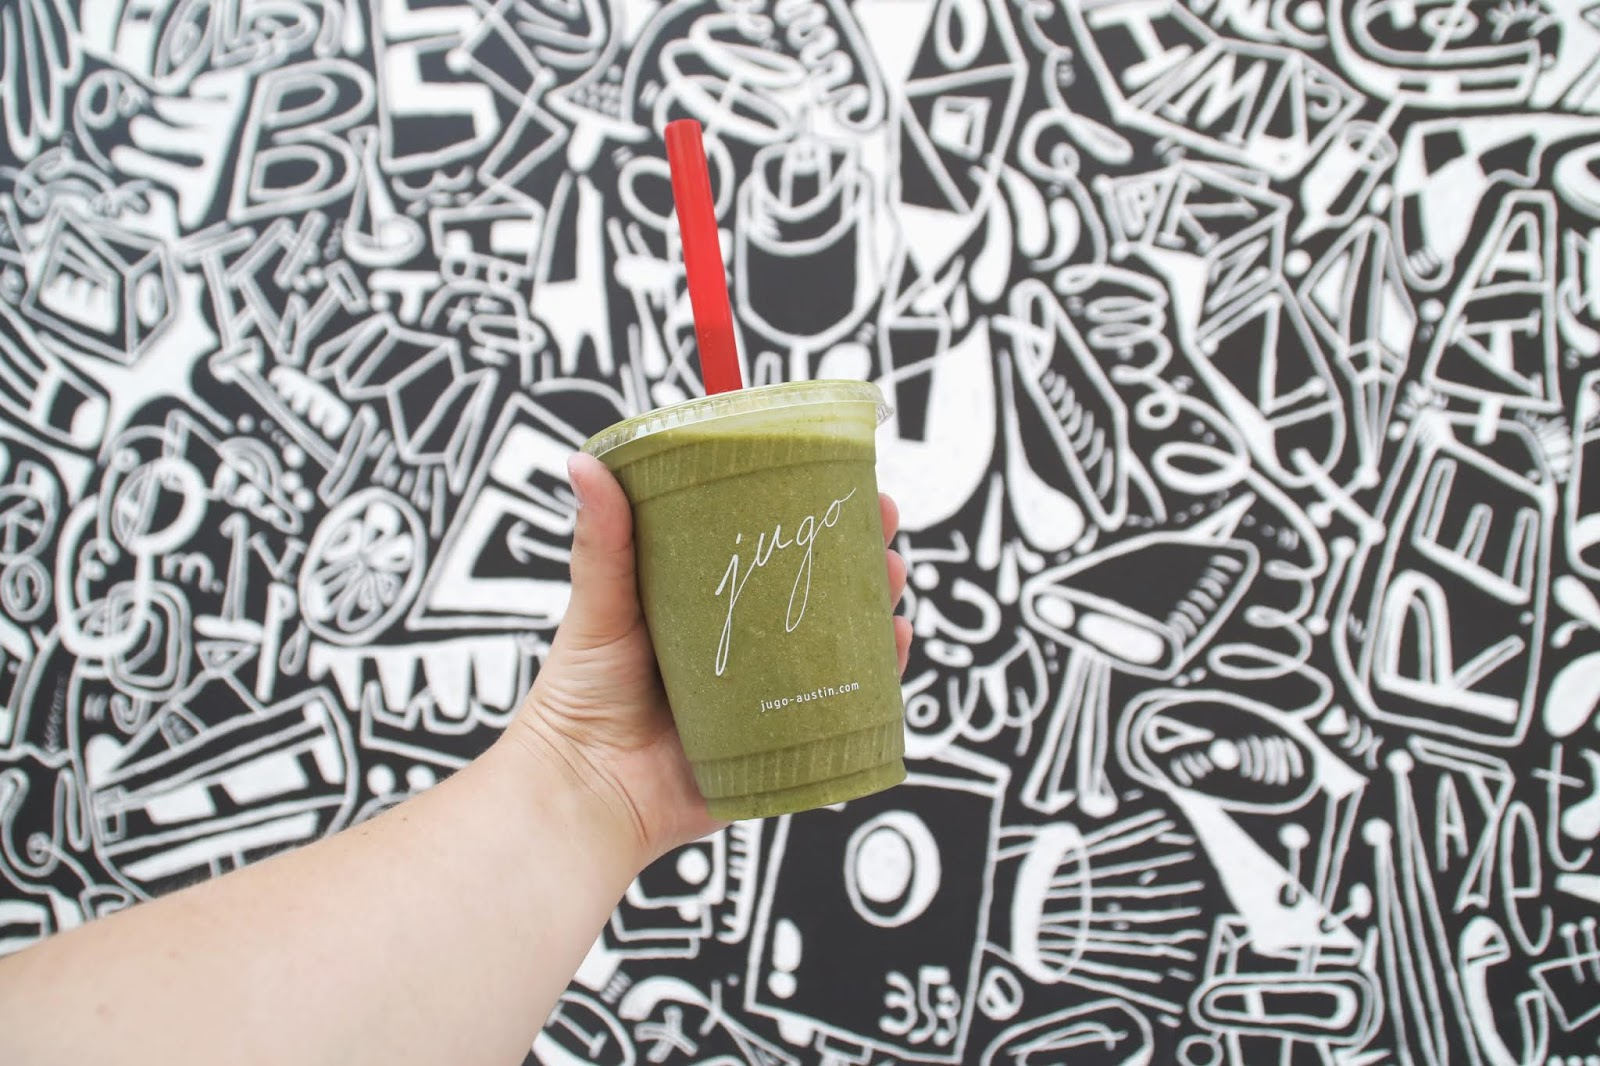 smoothies and juices in austin, jugo juicery austin, downtown austin